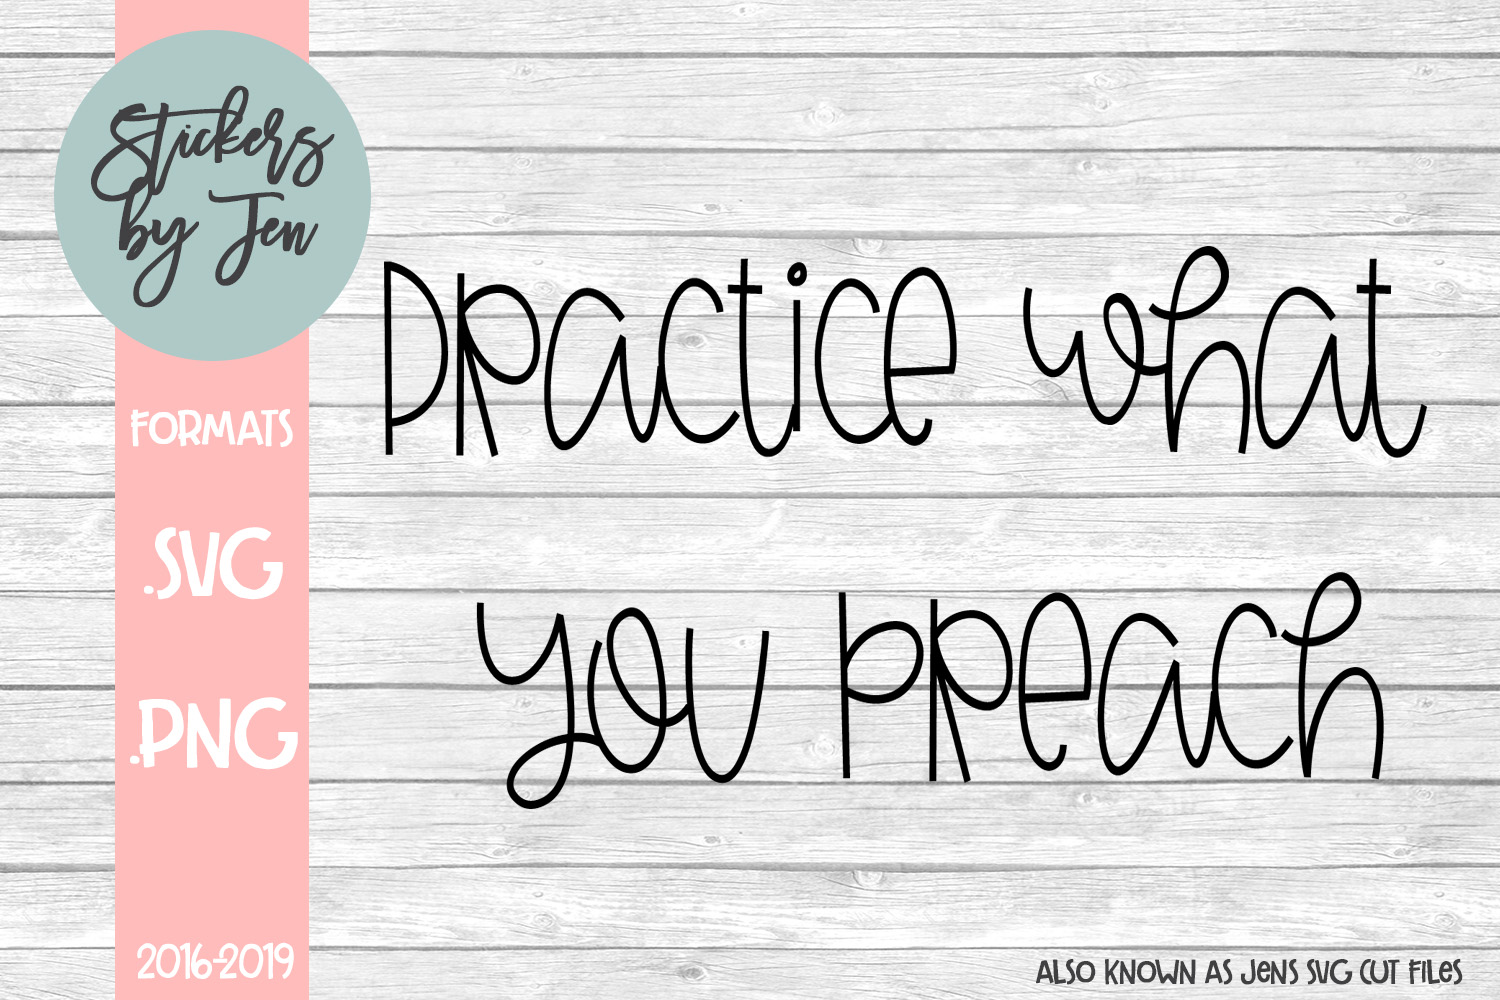 Download Free Practice What You Preach Graphic By Stickers By Jennifer for Cricut Explore, Silhouette and other cutting machines.